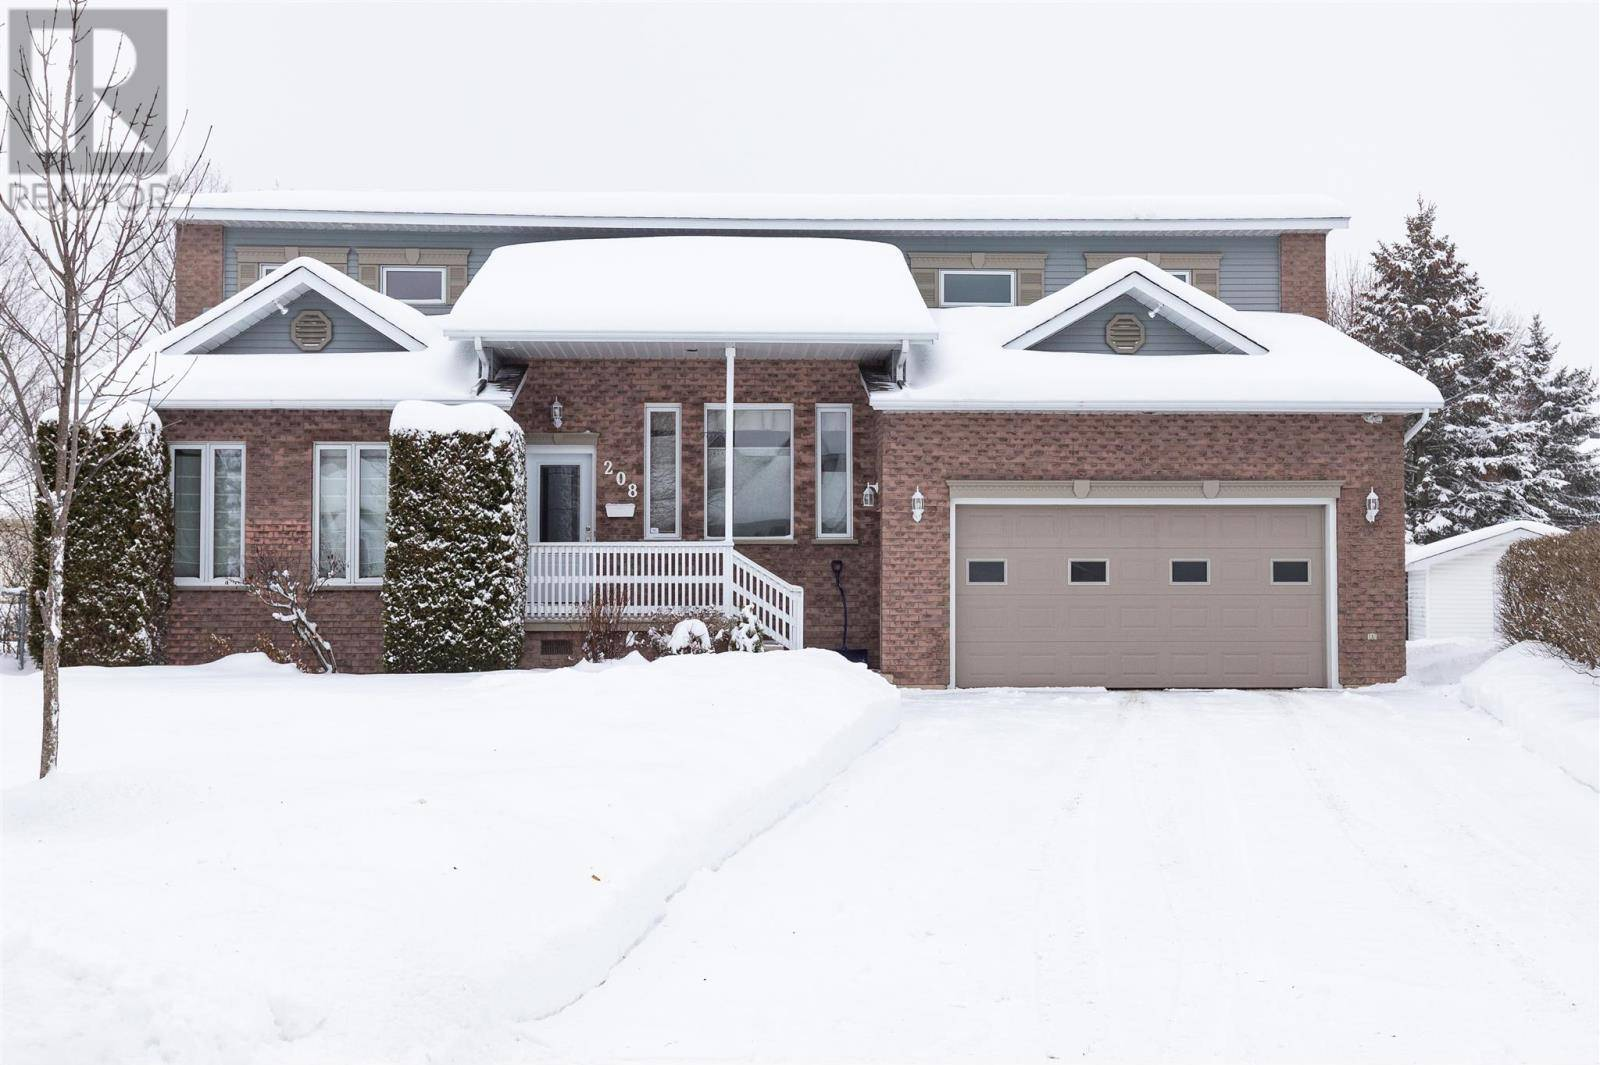 House for sale at 208 Promenade Dr Sault Ste. Marie Ontario - MLS: SM127895